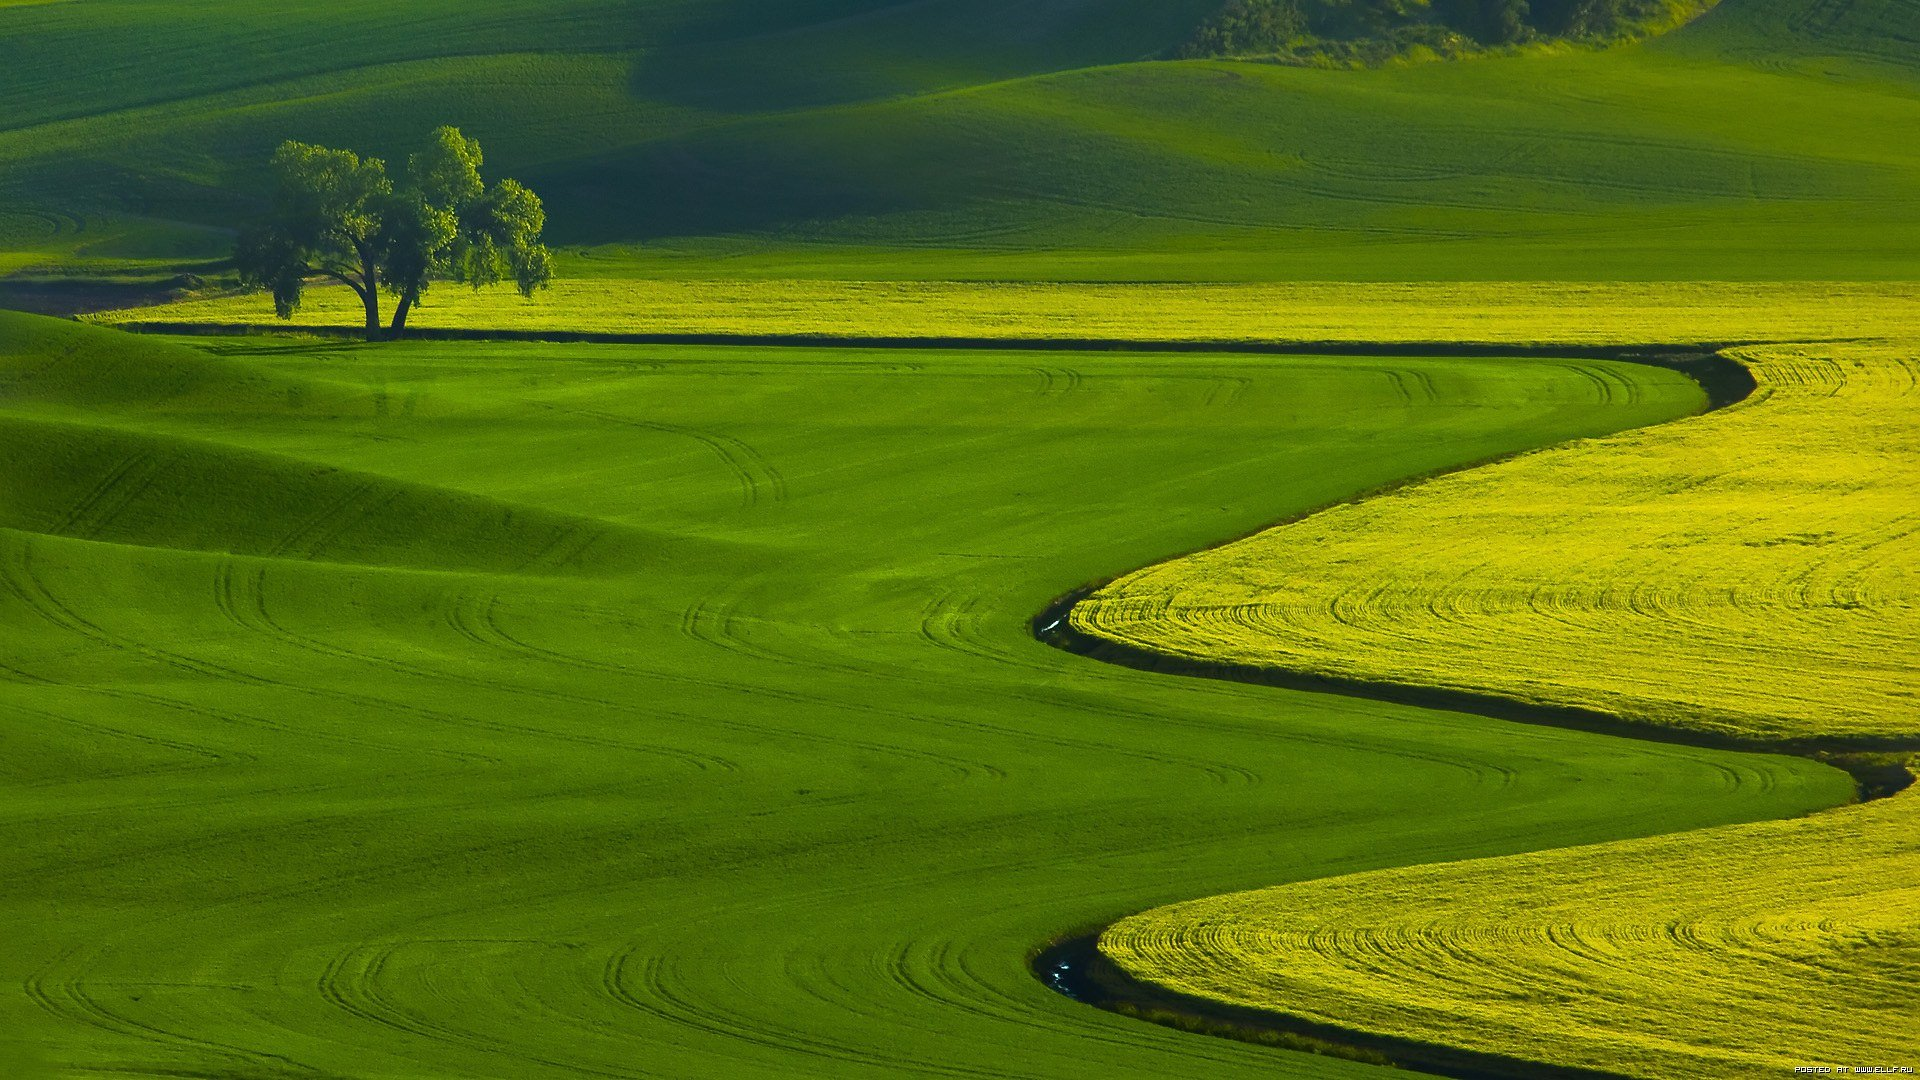 Desktop wallpaper - Elegant Green Field Desktop Wallpaper Hd Wallpapers